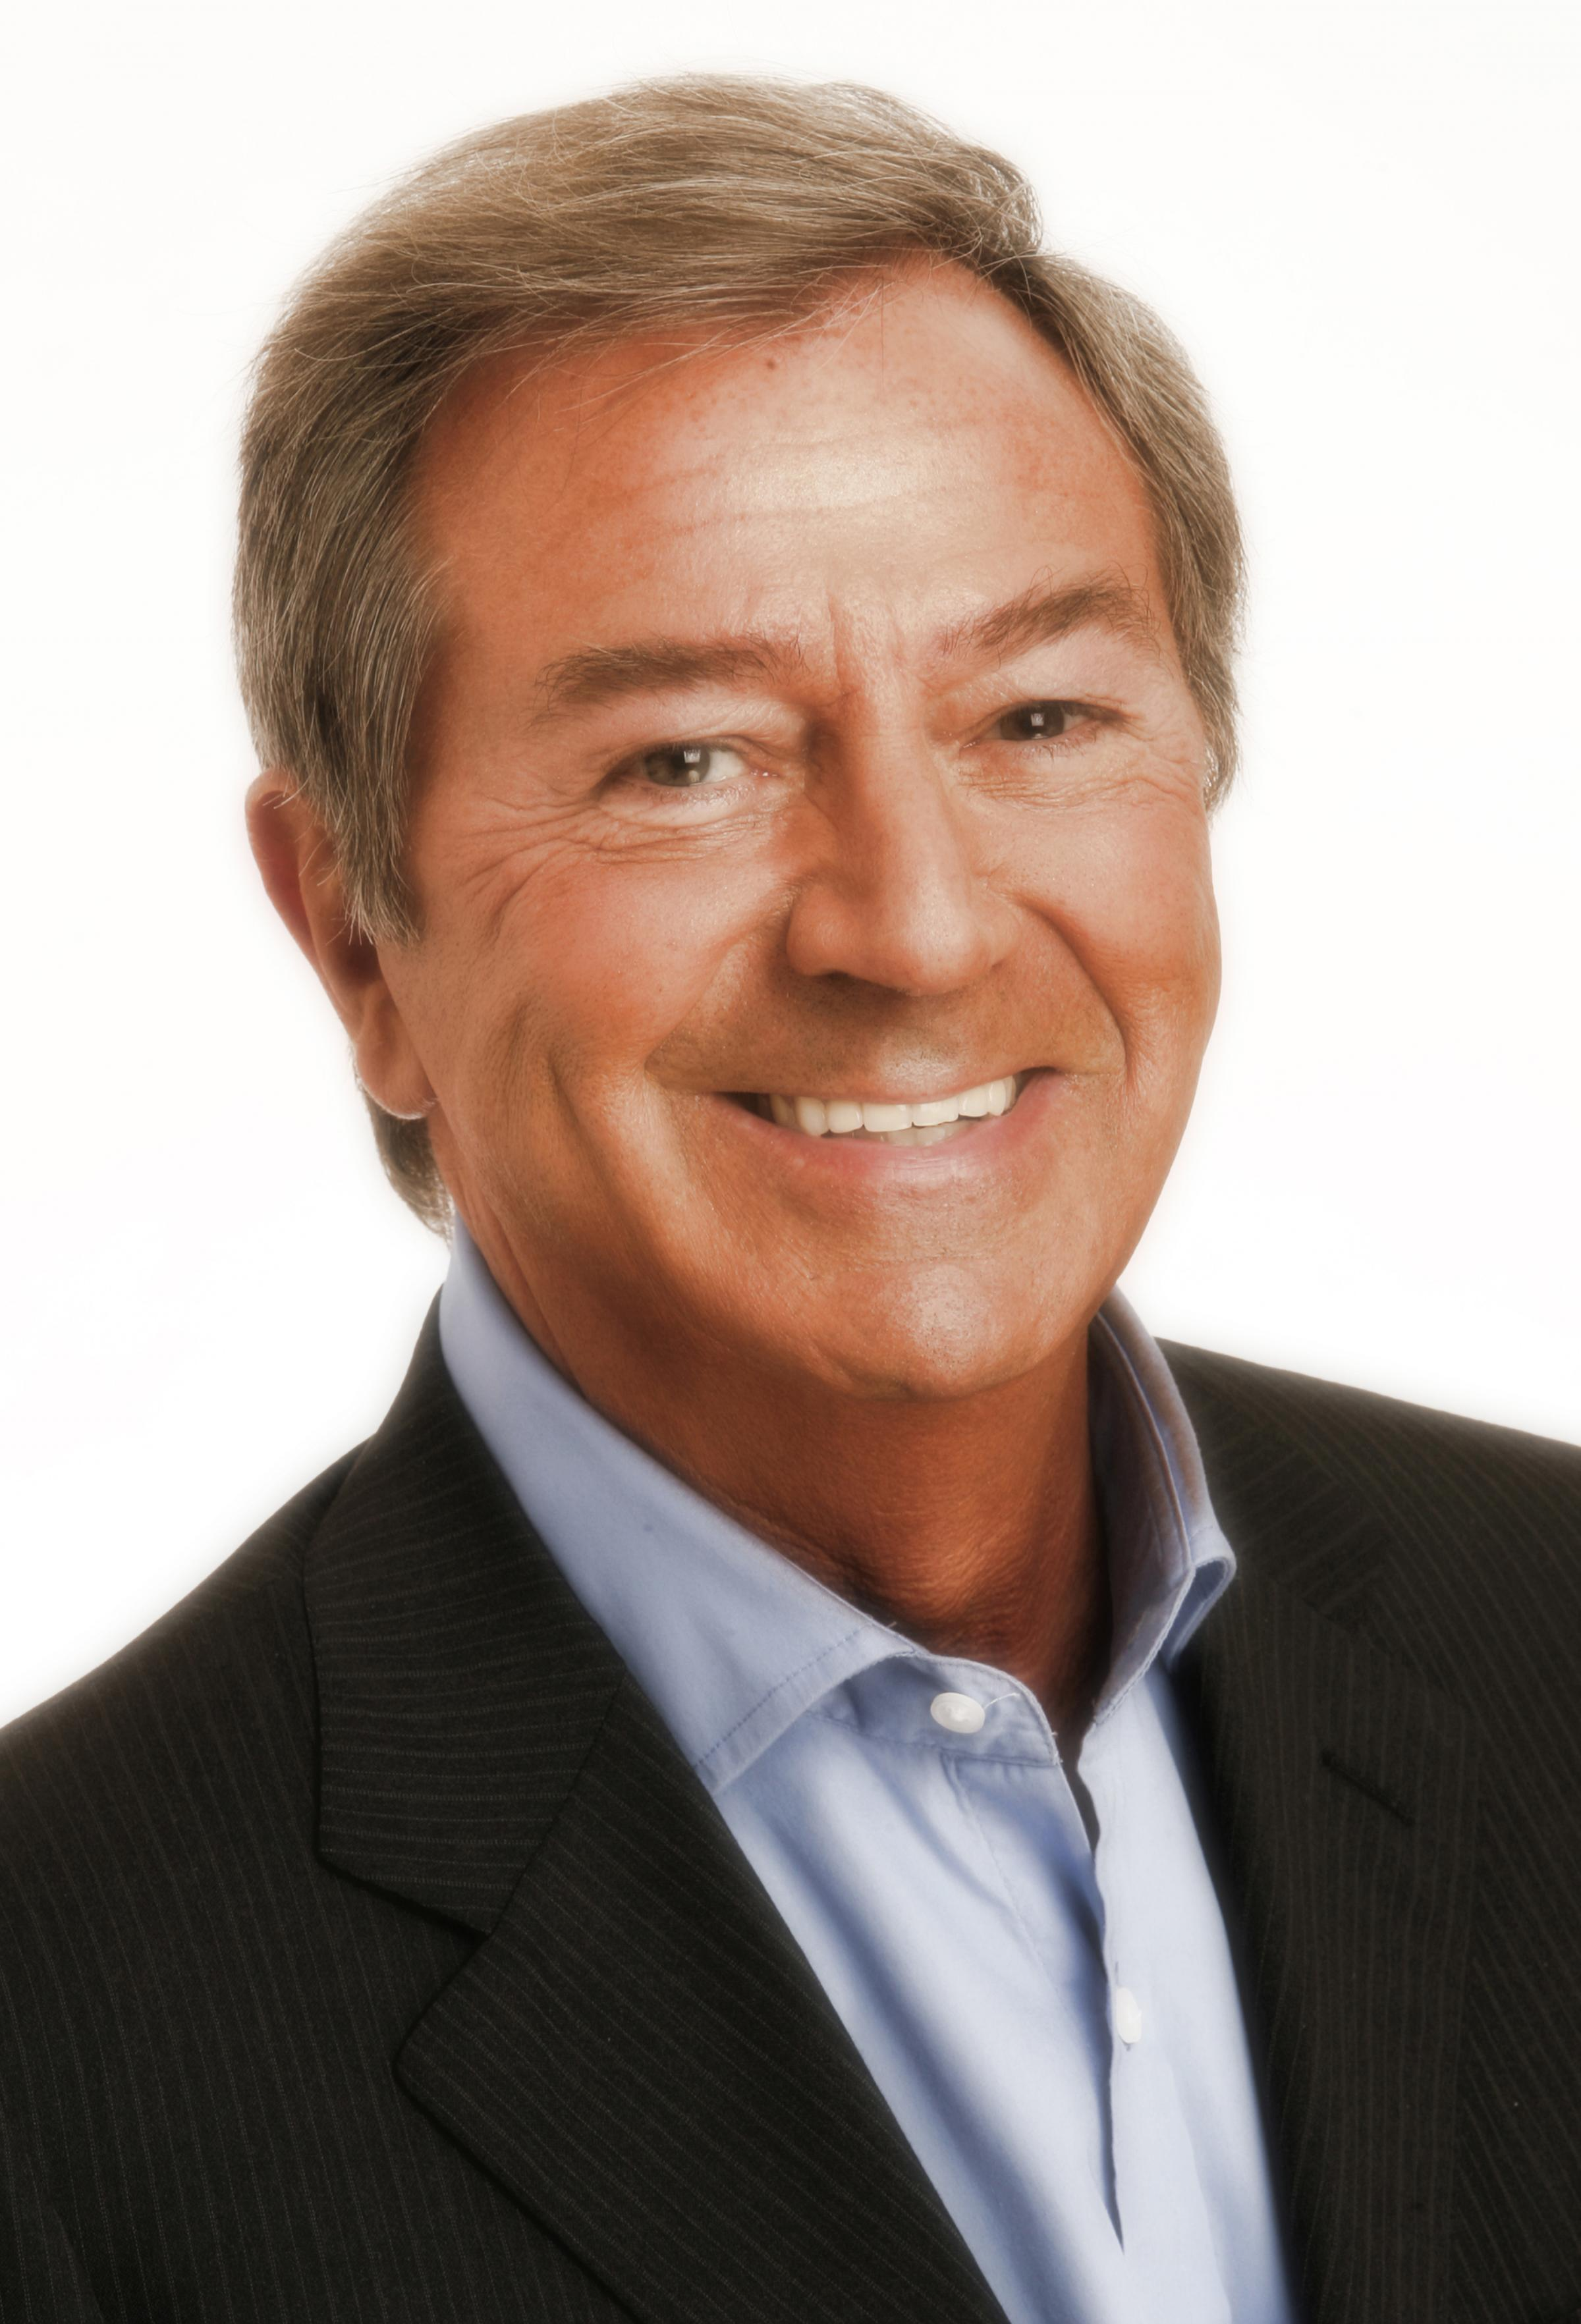 Des O'Connor talks about his career ahead of